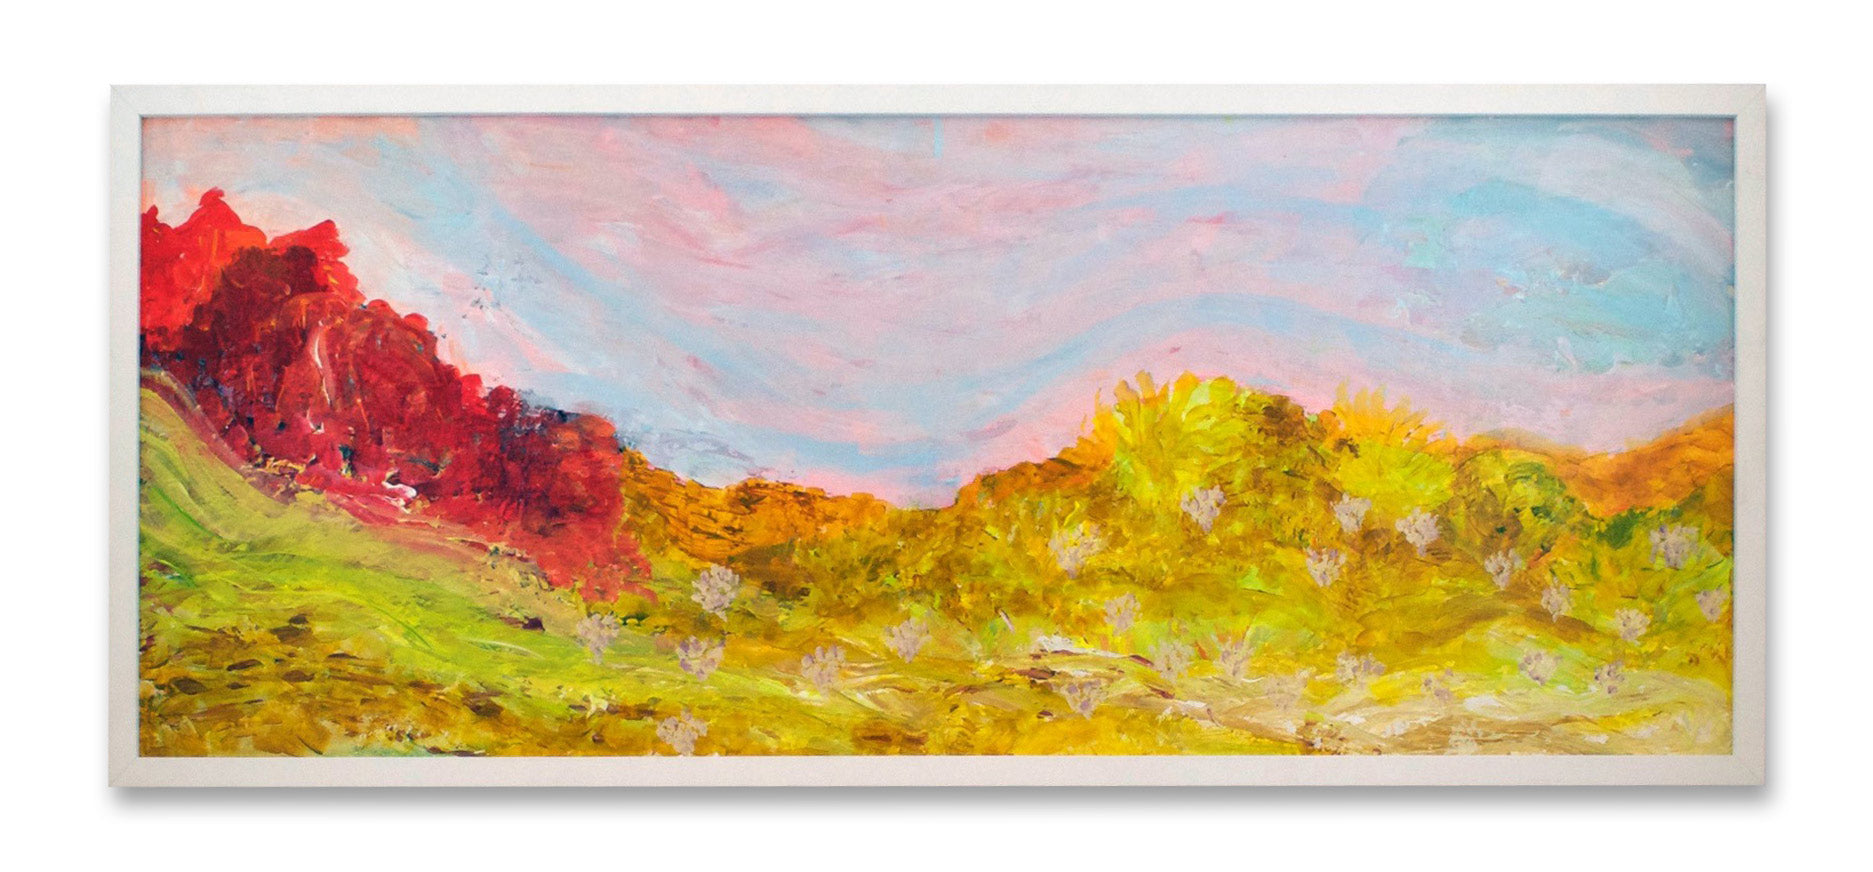 Acrylic landscape painting, framed, long desert view/oranges ochres yellows, framed